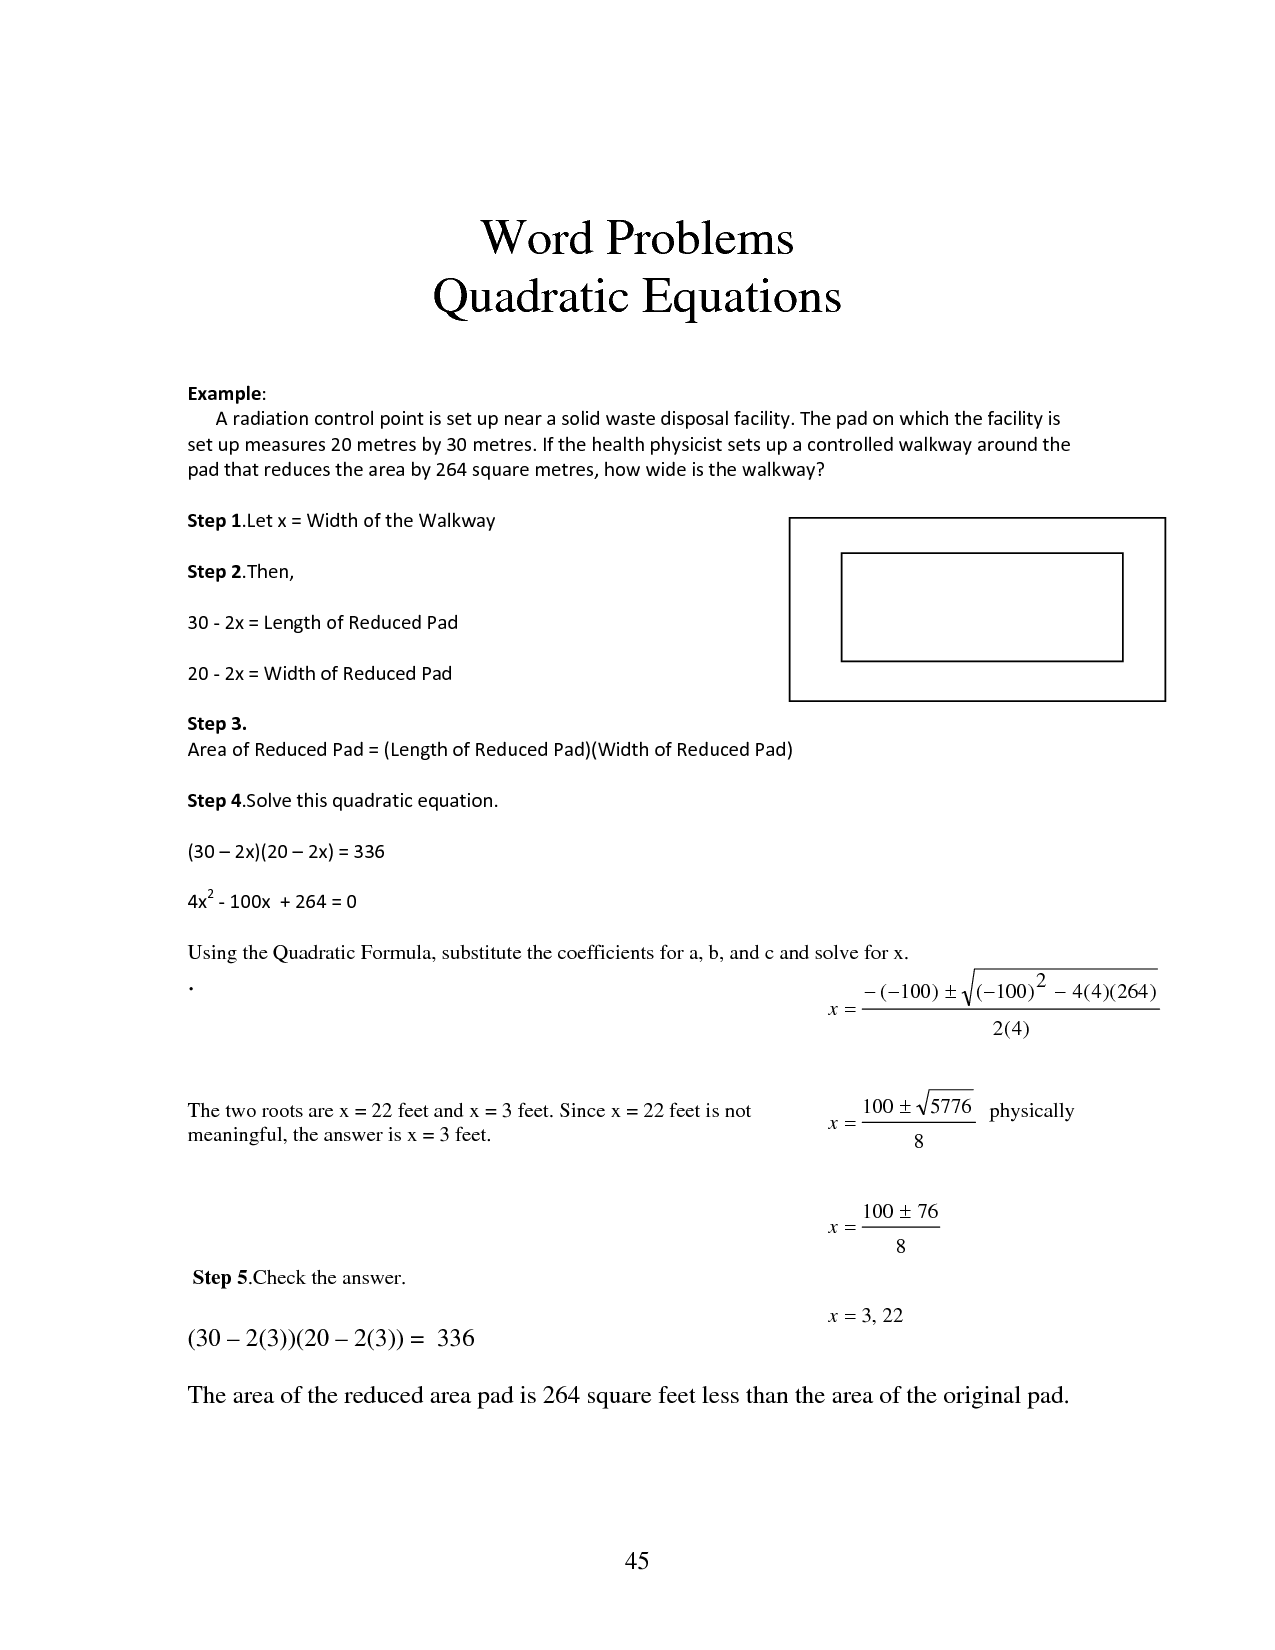 Solving Word Problems With Quadratic Equations Worksheet